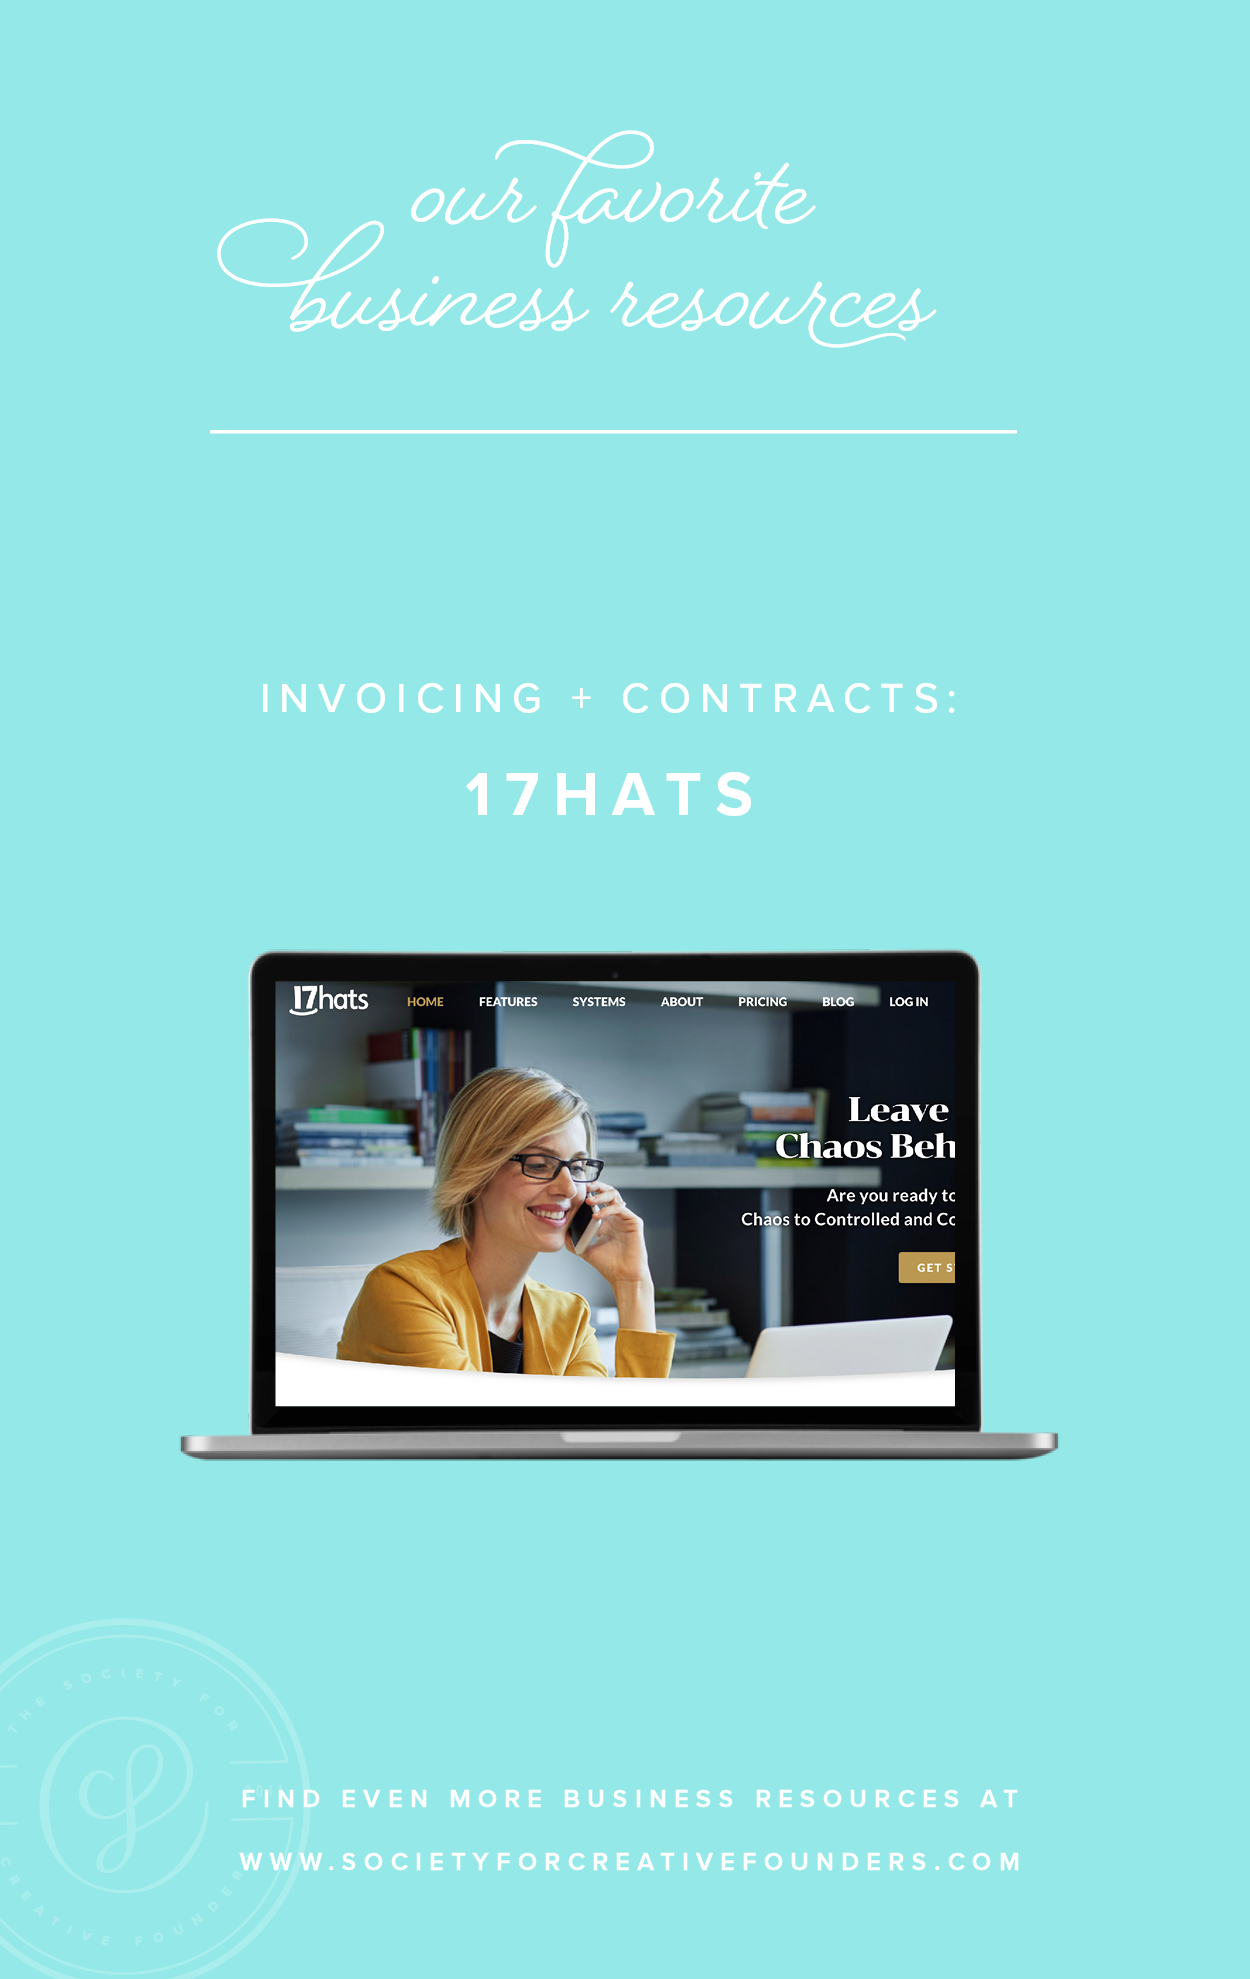 17Hats for Invoicing and Contracts - Favorite Business Resources from Society for Creative Founders